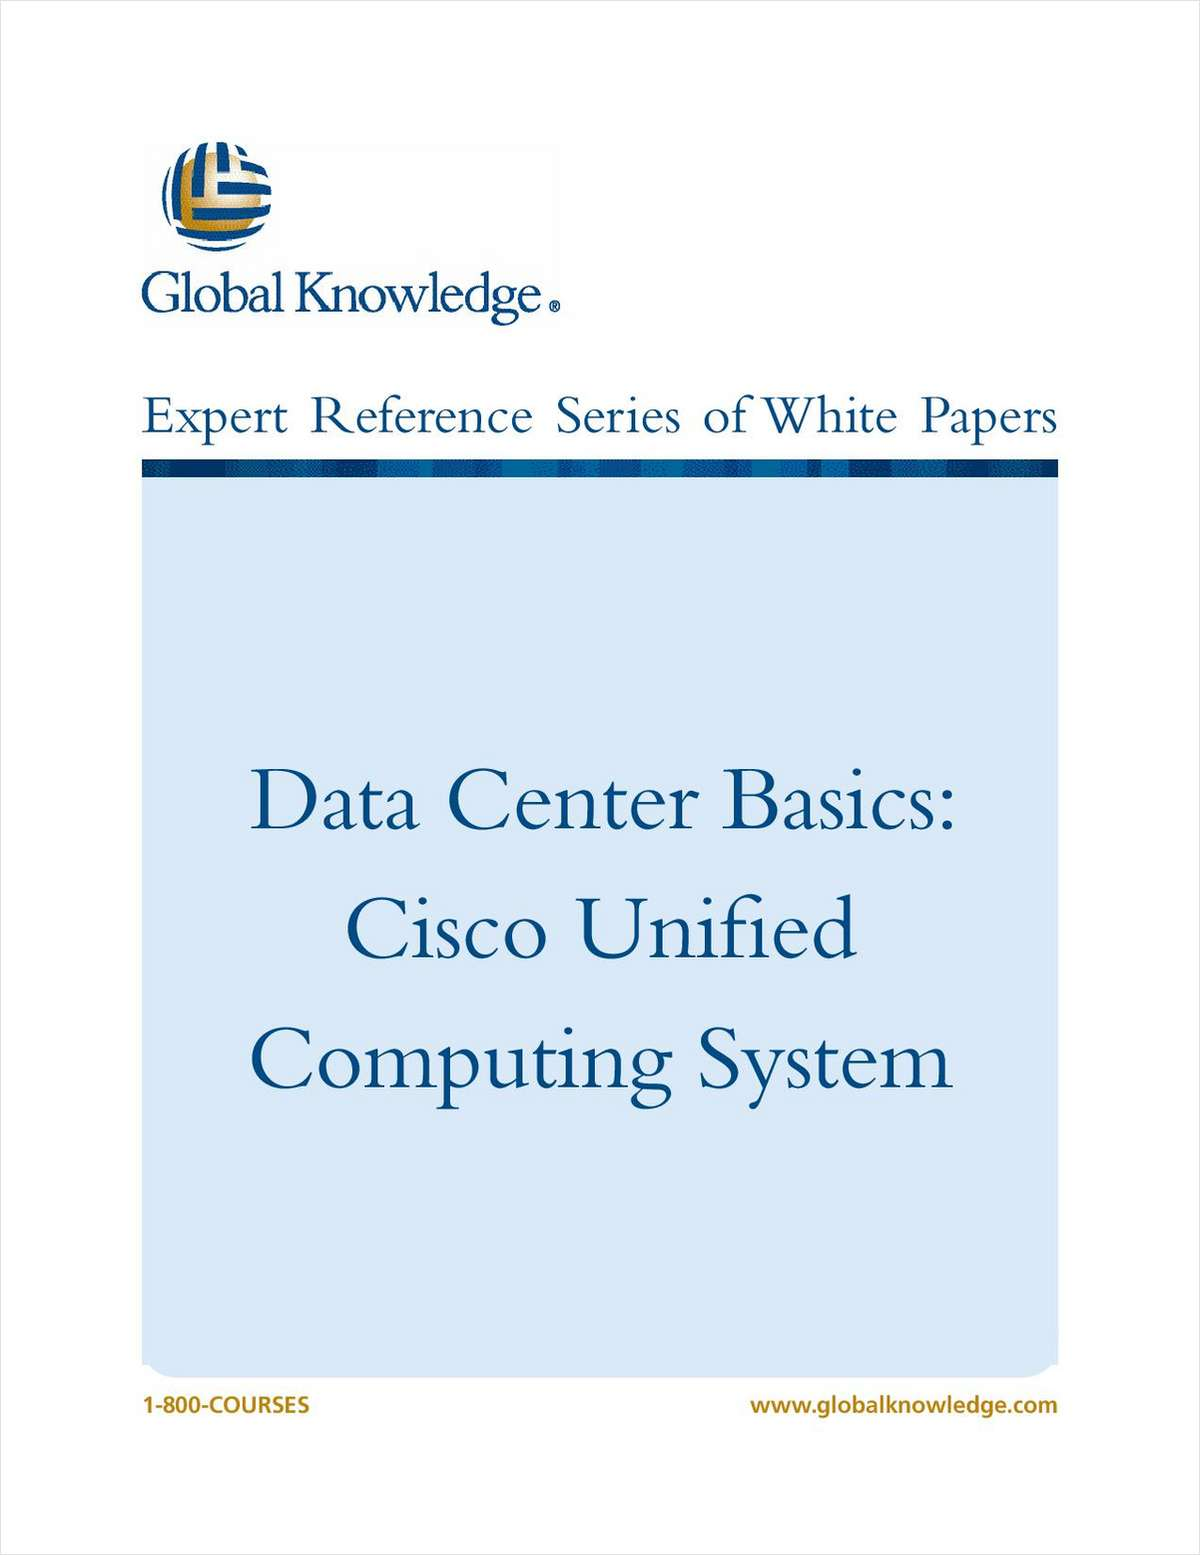 Data Center Basics - Cisco UCS